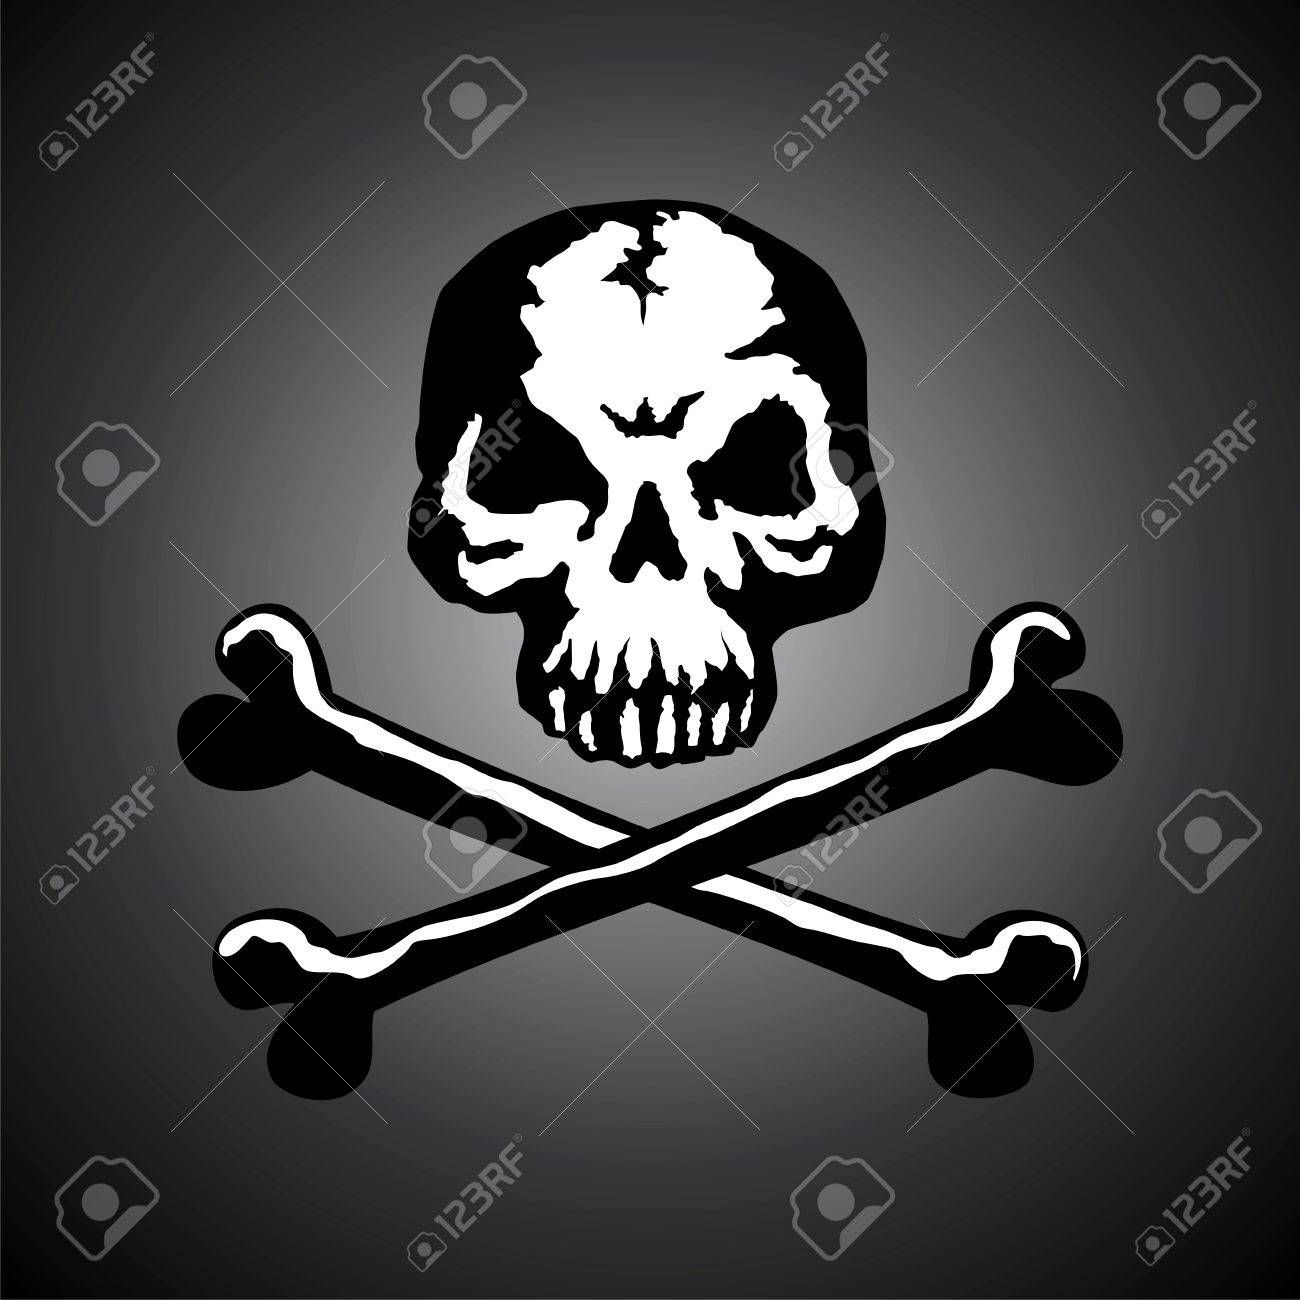 Illustration of a skull with two bones on a dark background Stock Vector - 7731024